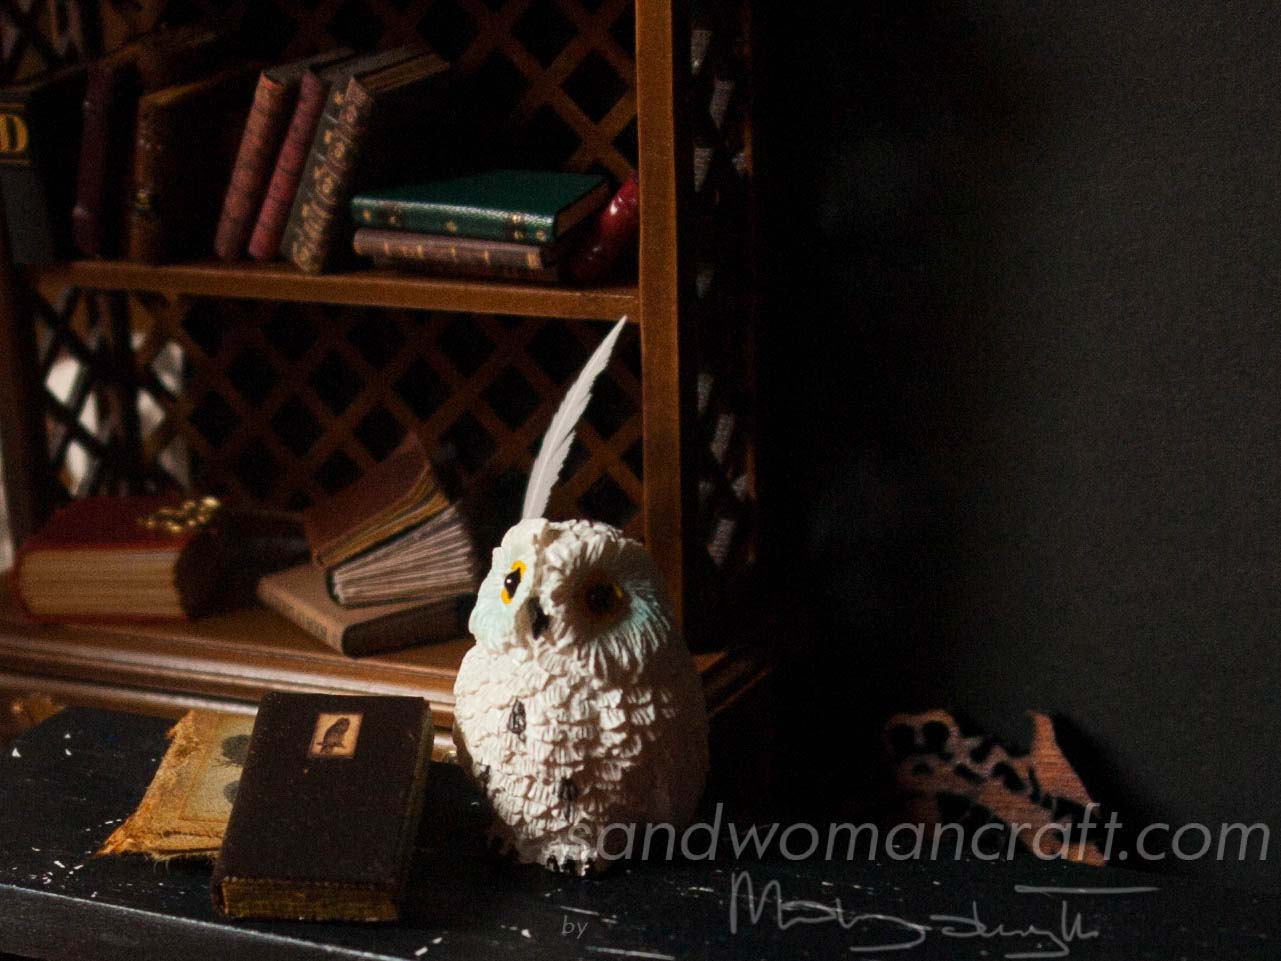 Miniature leather book with Owl in 1:12 scale